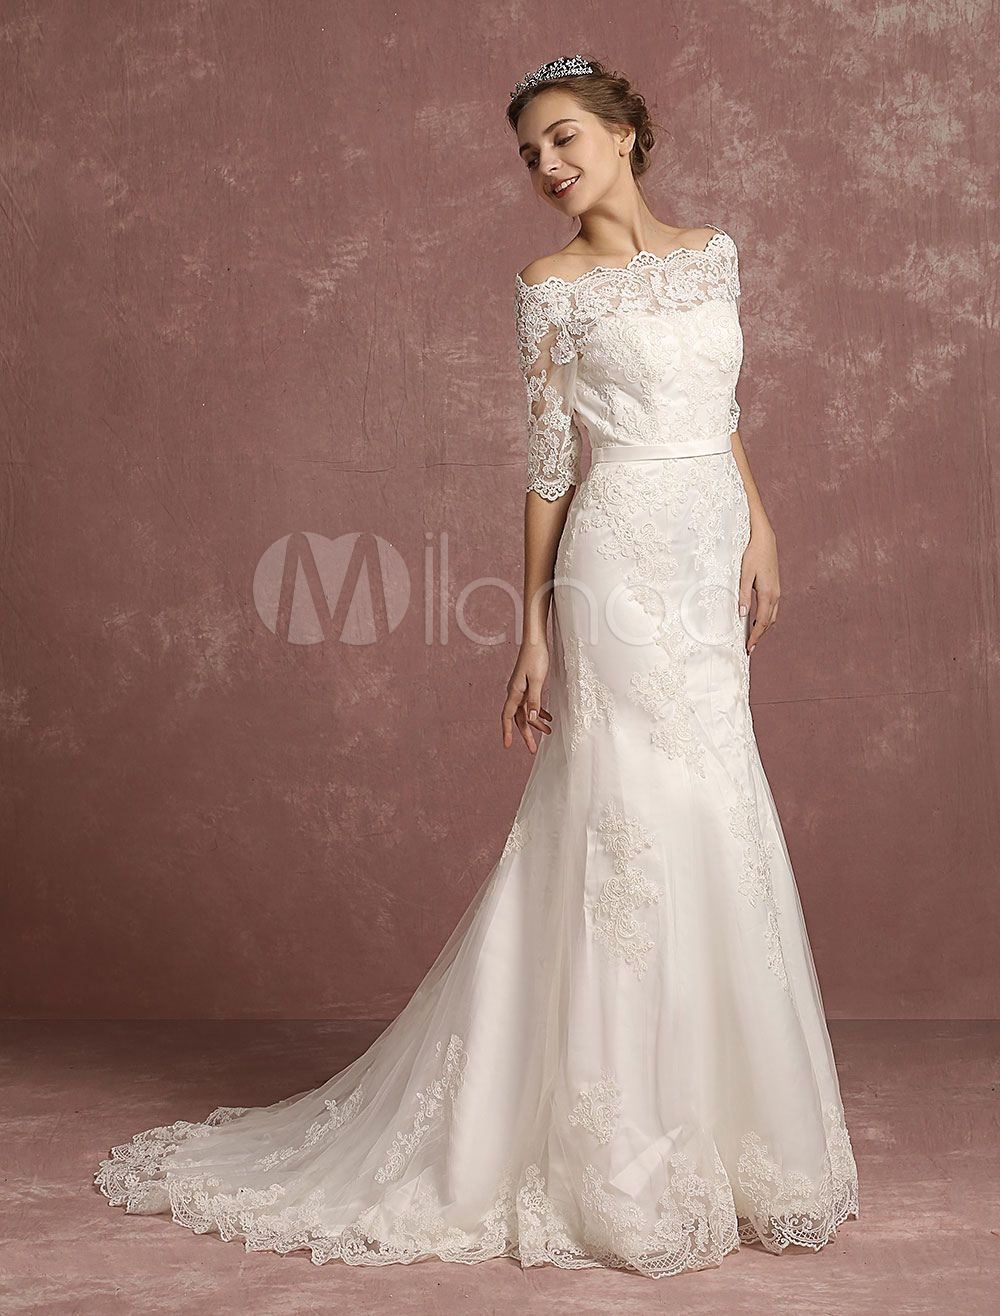 Mermaid wedding dress lace half sleeve bridal gown bateau beaded